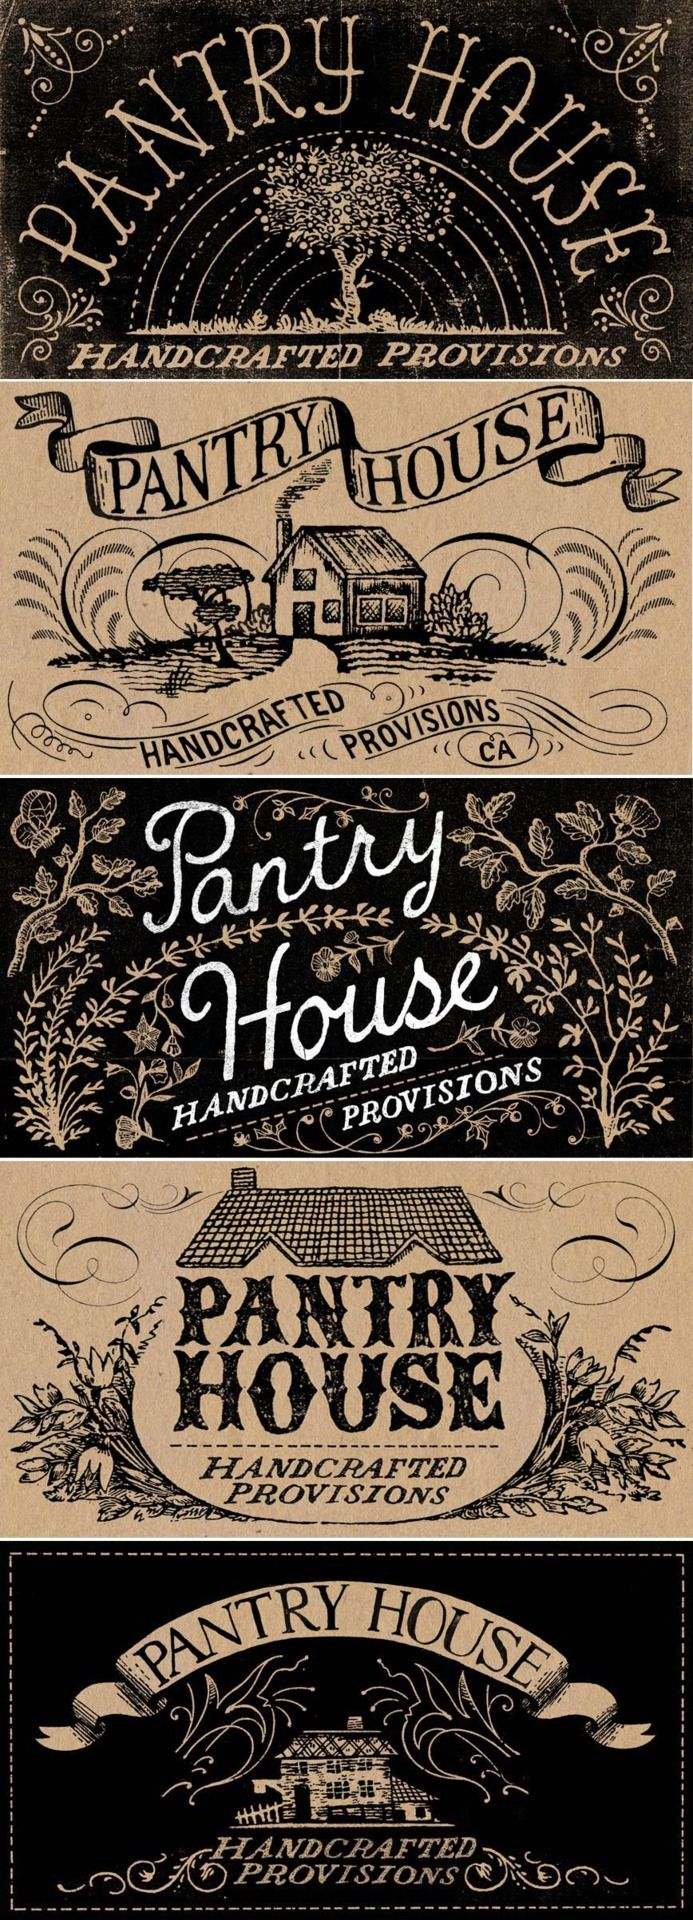 Grady McFerrin: Logos Design Illustrations, Design Inspiration, Gradi Mcferrin, Houses Logos, Hands Letters, Labels Design Ideas, Graphics Design Logos, Houses Design, Pantries Houses